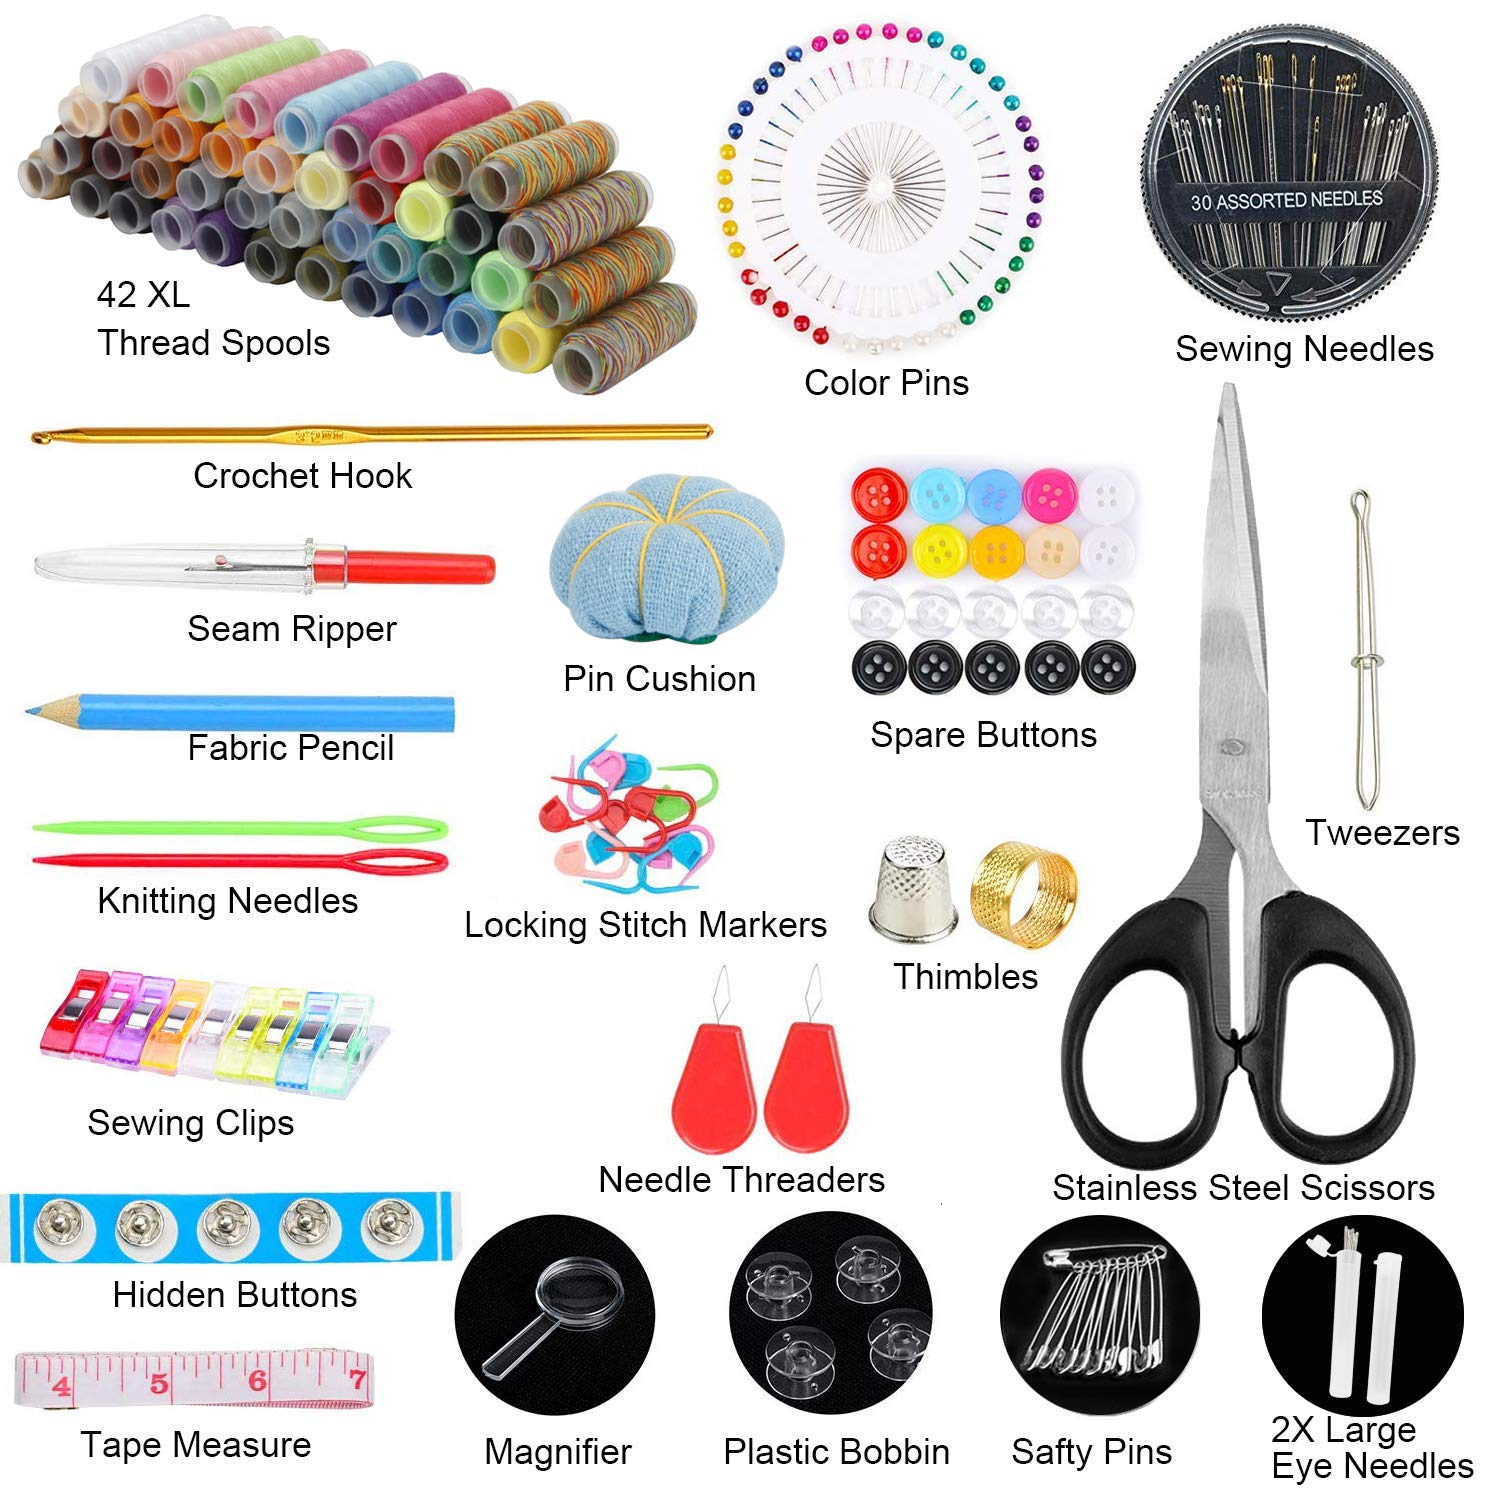 HuaQi Sewing Kit 206pack Sewing Accessories and Supplies with 42 XL Thread Spools, Sewing Needles, Scissors, Tape Measure, Thimble etc. for Traveler, Adults, Beginner, Emergency, DIY (XL-206pack)